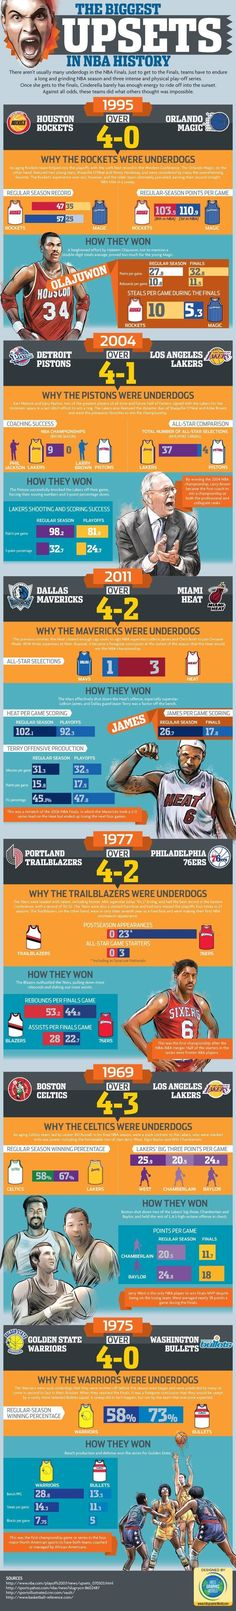 The Biggest Upsets in NBA Finals History Infographic || IGW-NBA-Finals-6june2013 || #NBA #basketball #basketballinfographic #basketballfacts